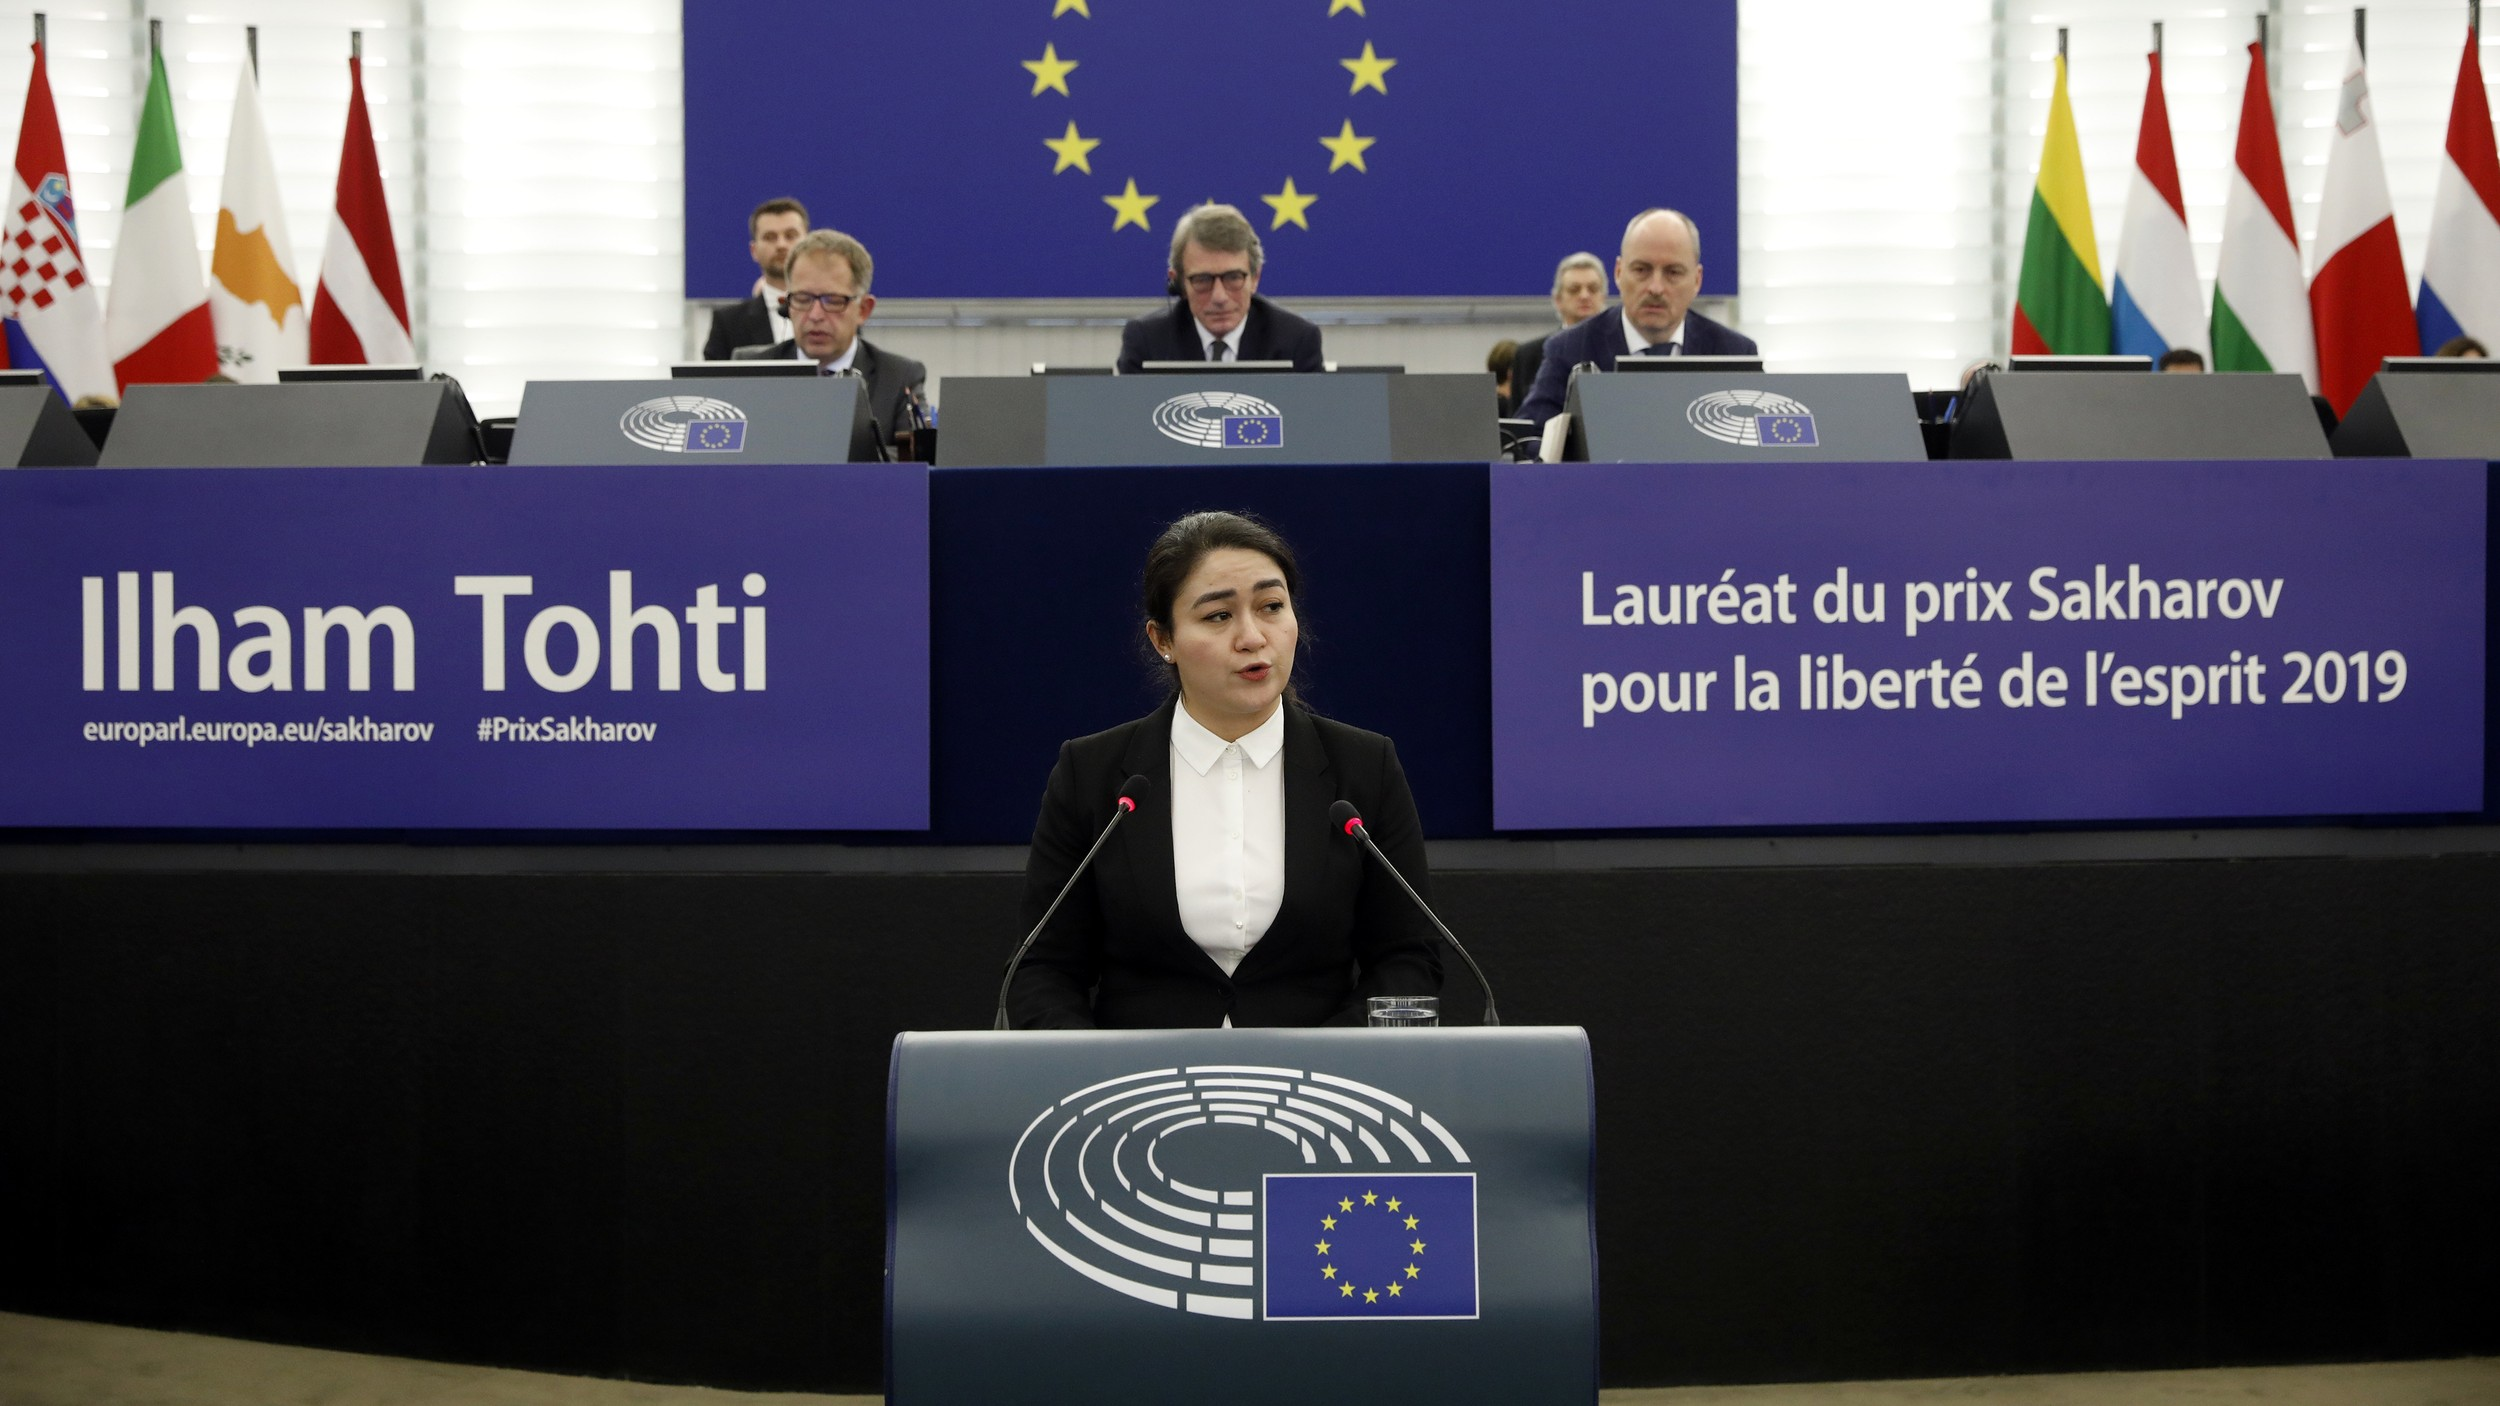 European Parliament Passes Resolution on Hong Kong Calling for 'Urgent and Resolute' Action